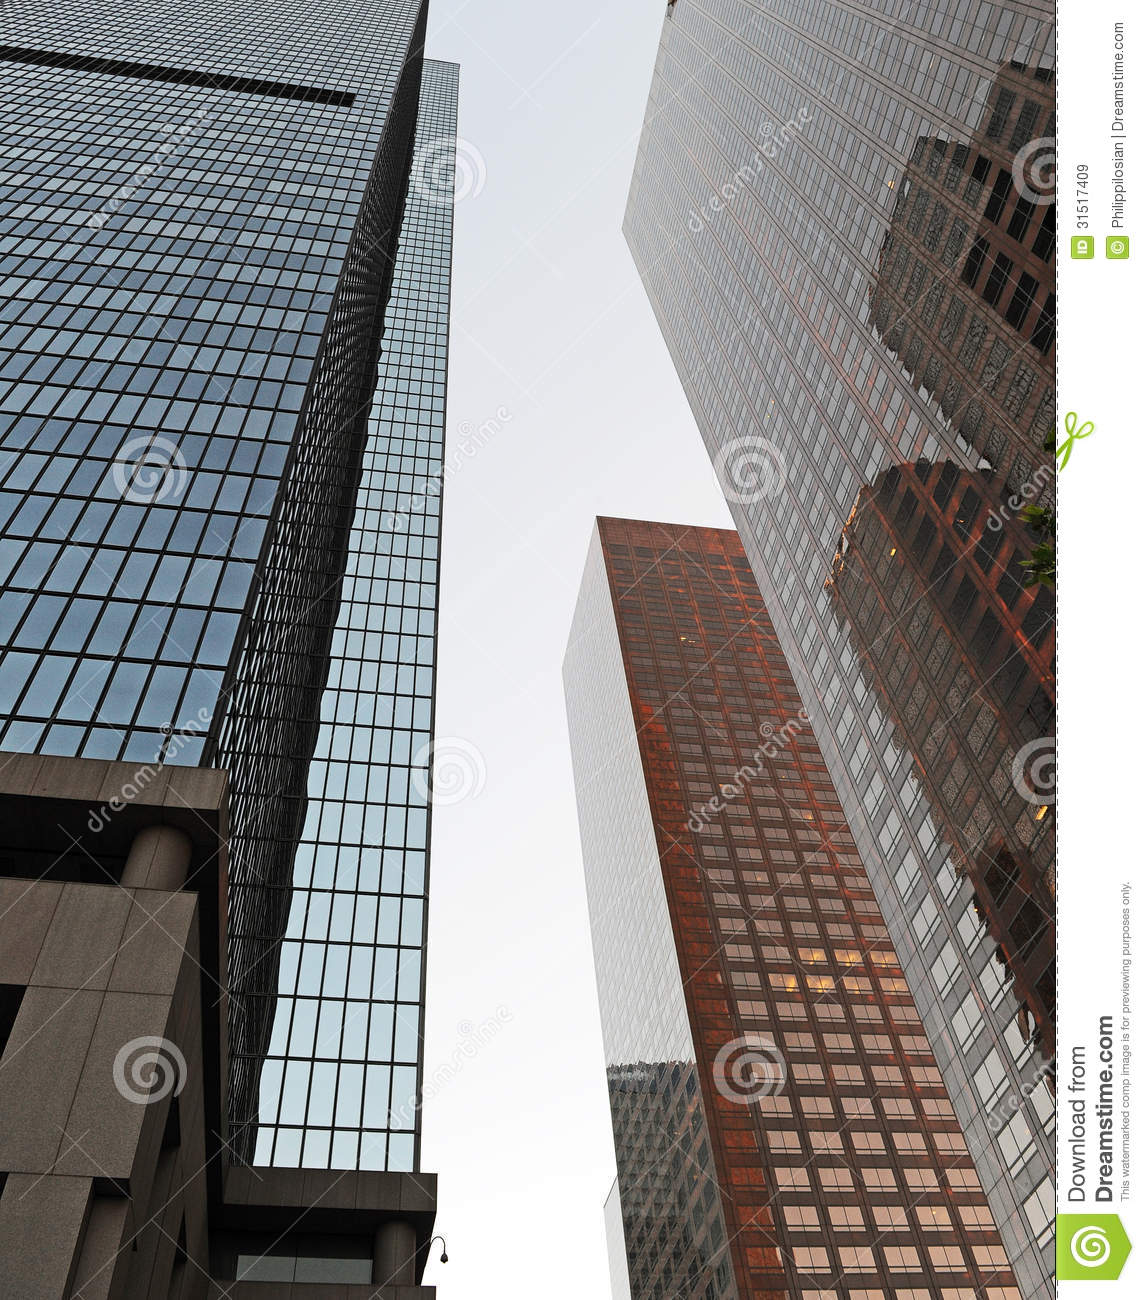 High Rise Office Buildings Stock Image. Image Of City